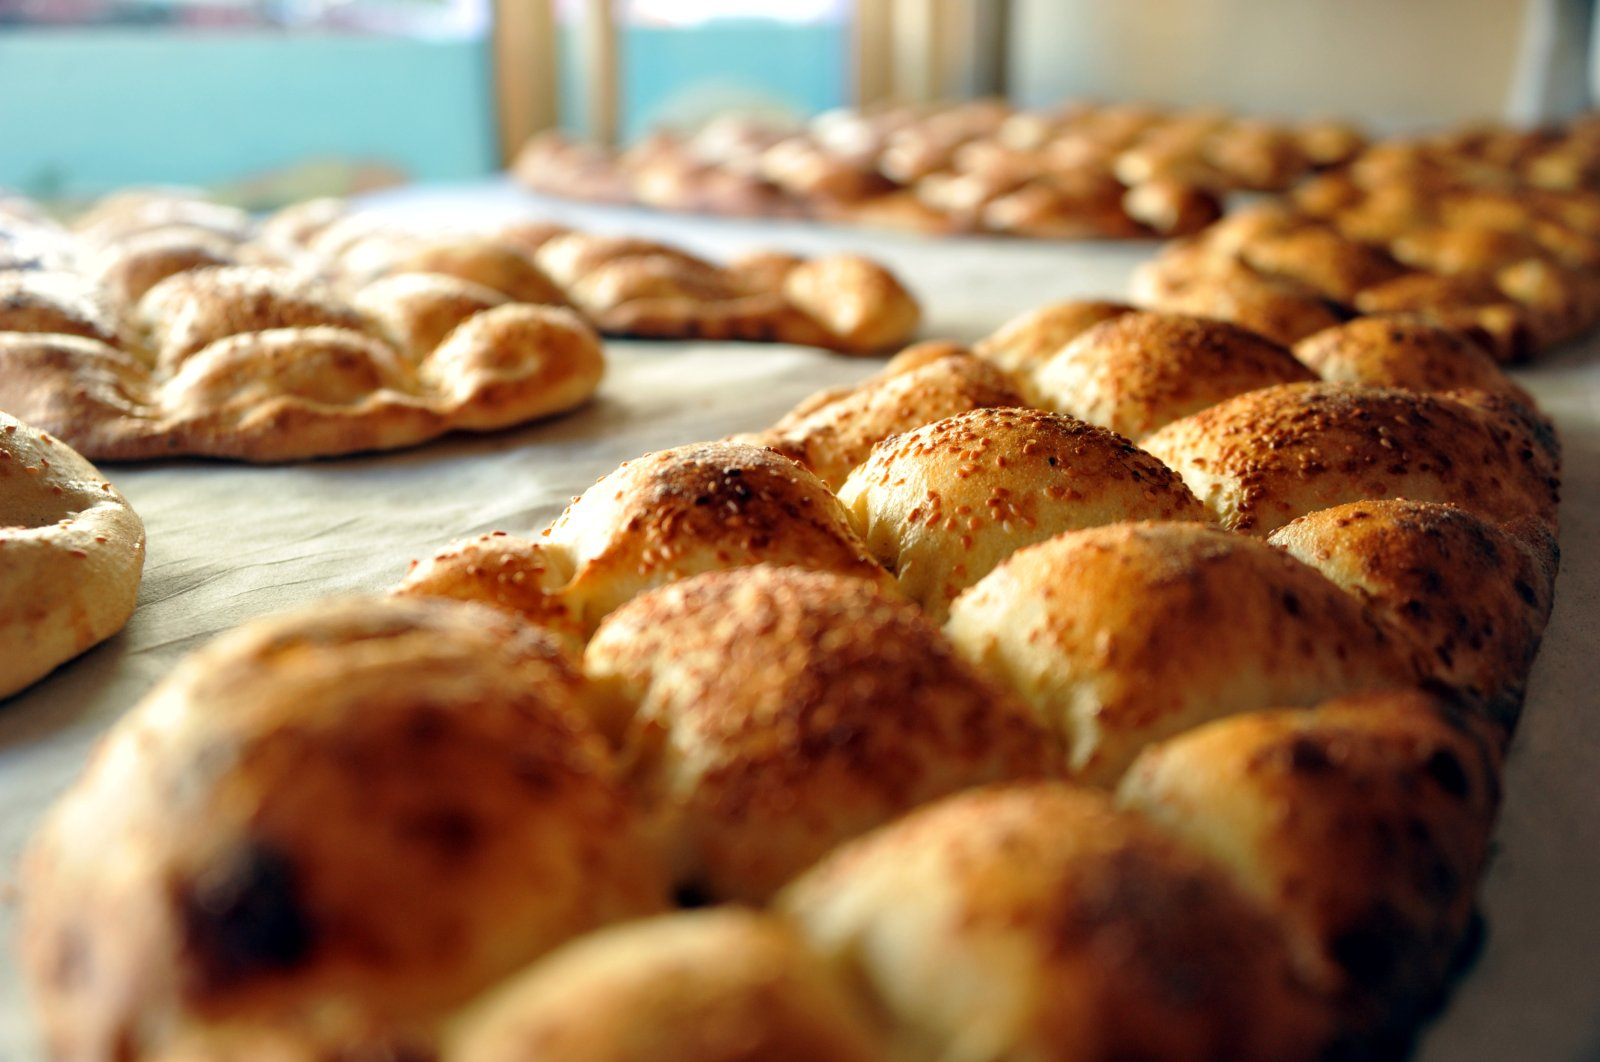 Several special round baked flatbreadreferred to as the Ramazan pide, made from an oven-baked enriched dough and sprinkled with nigella and sesame seeds on top,siton a counter inTokat, Turkey, April 13, 2021. (AA Photo)